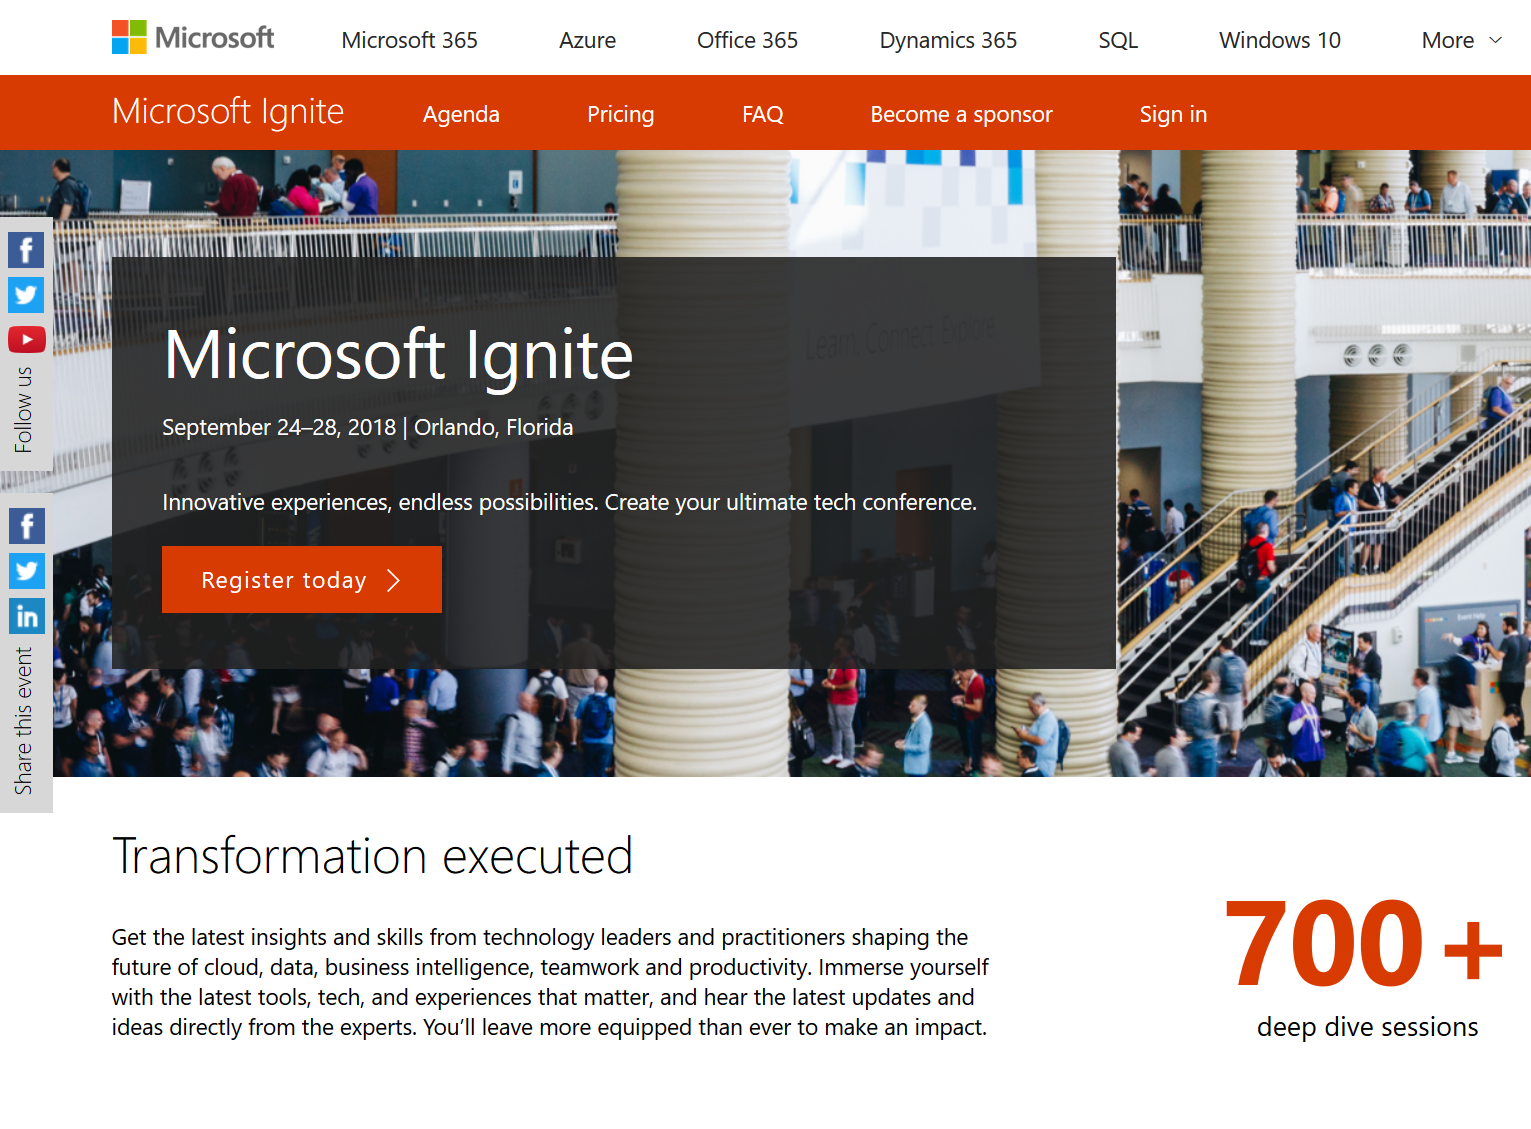 Ignite 2018 in Orlando: Registration is Open - This is one of the best conferences for folks invested in Microsoft solutions.